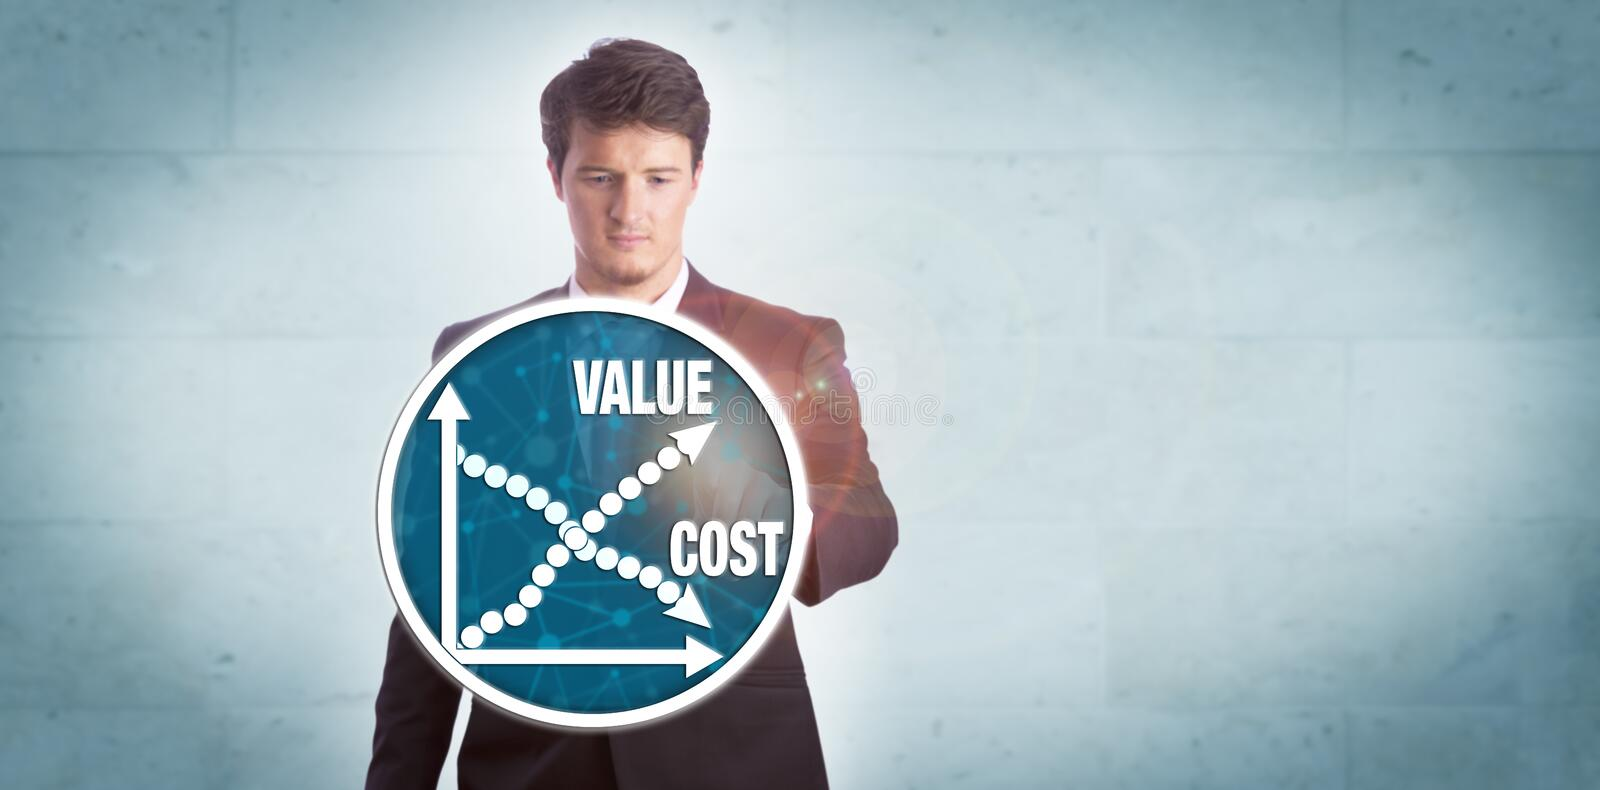 Man Analyzing Value Growth Versus Cost Reduction. Young businessman touching chart icon depicting growth of value versus reduction of cost. Technology and stock image